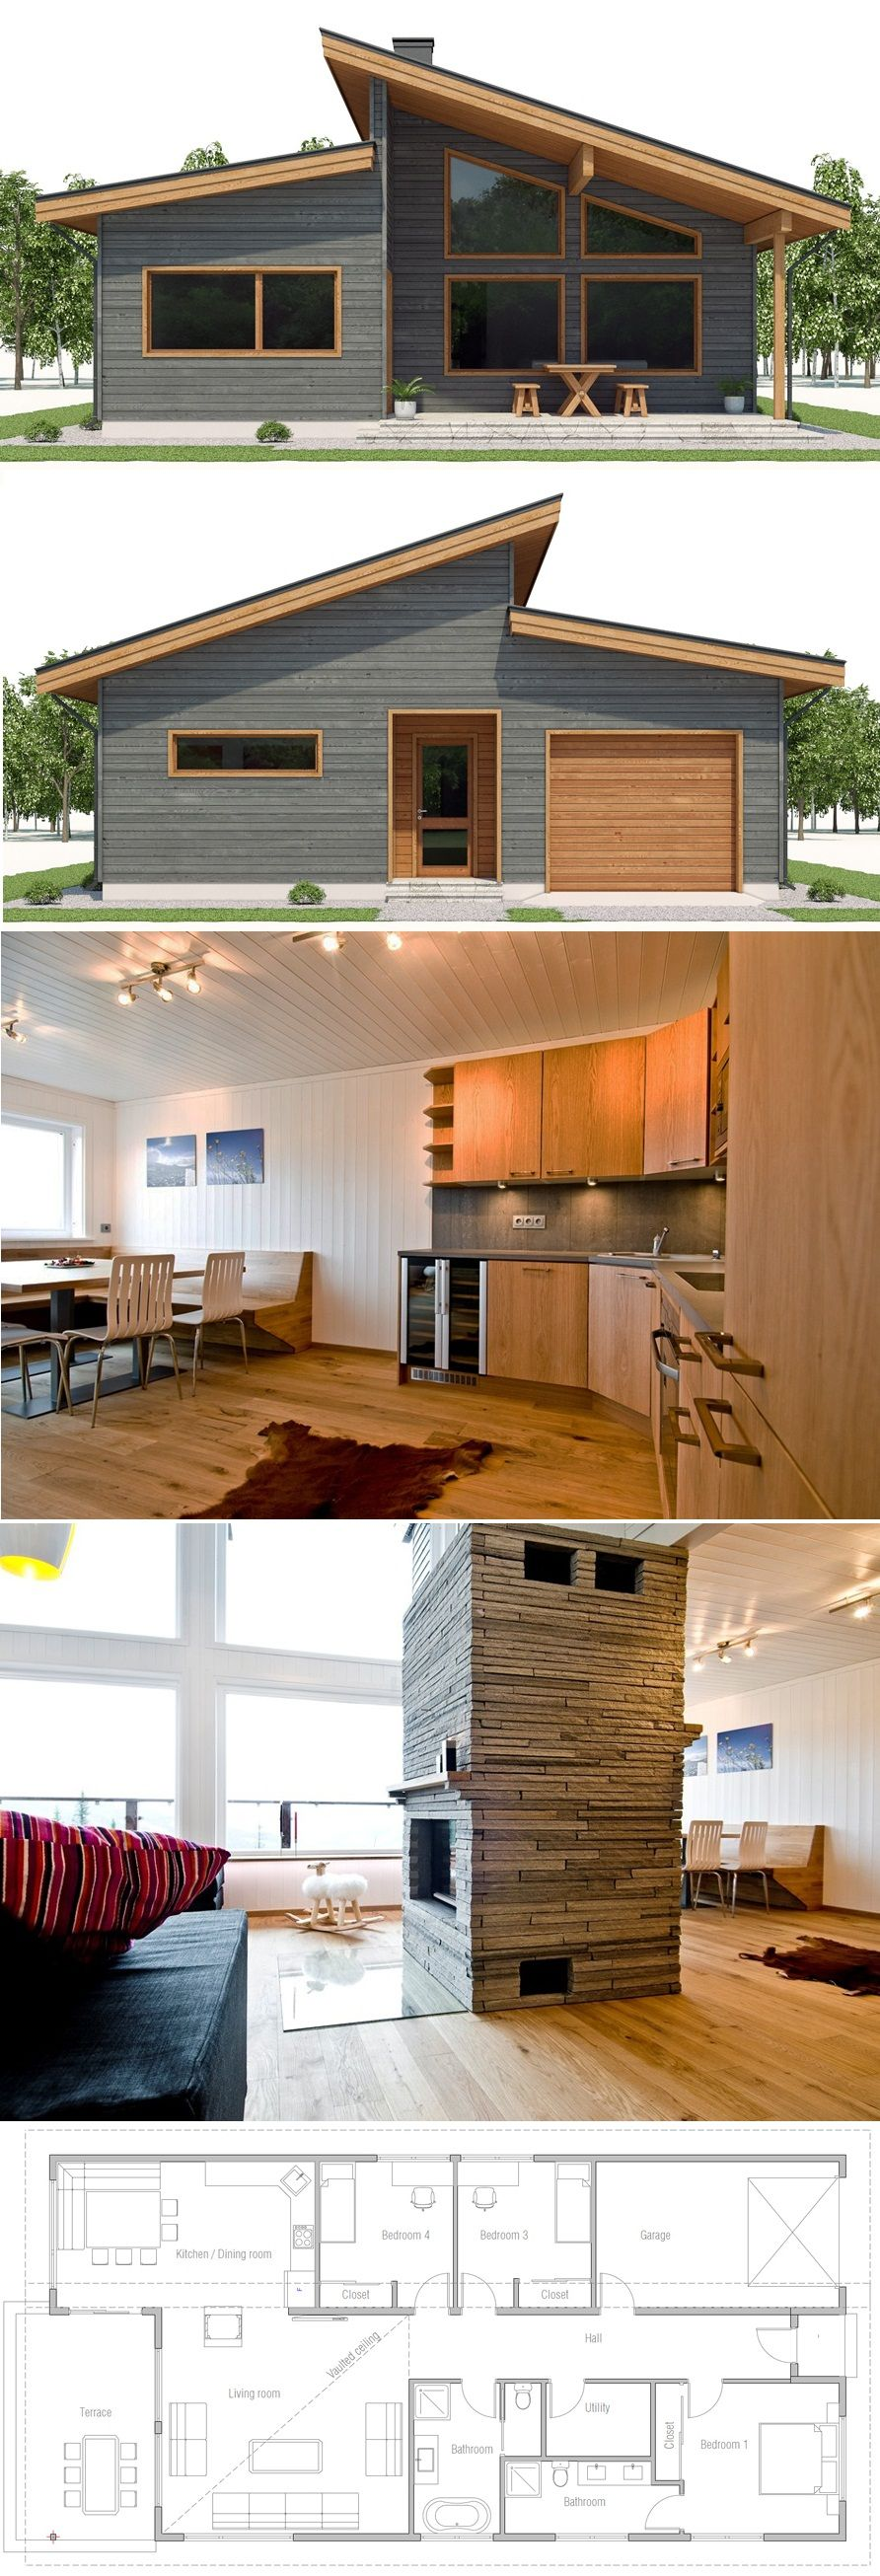 Bunk Room instead of attached Garage | Narrow House Plan ... Ranch House Bunk Plan on ranch brick house plans, ranch kitchen house plans, ranch log cabin plans, ranch cottage plans, ranch deck house plans, ranch double house plans,